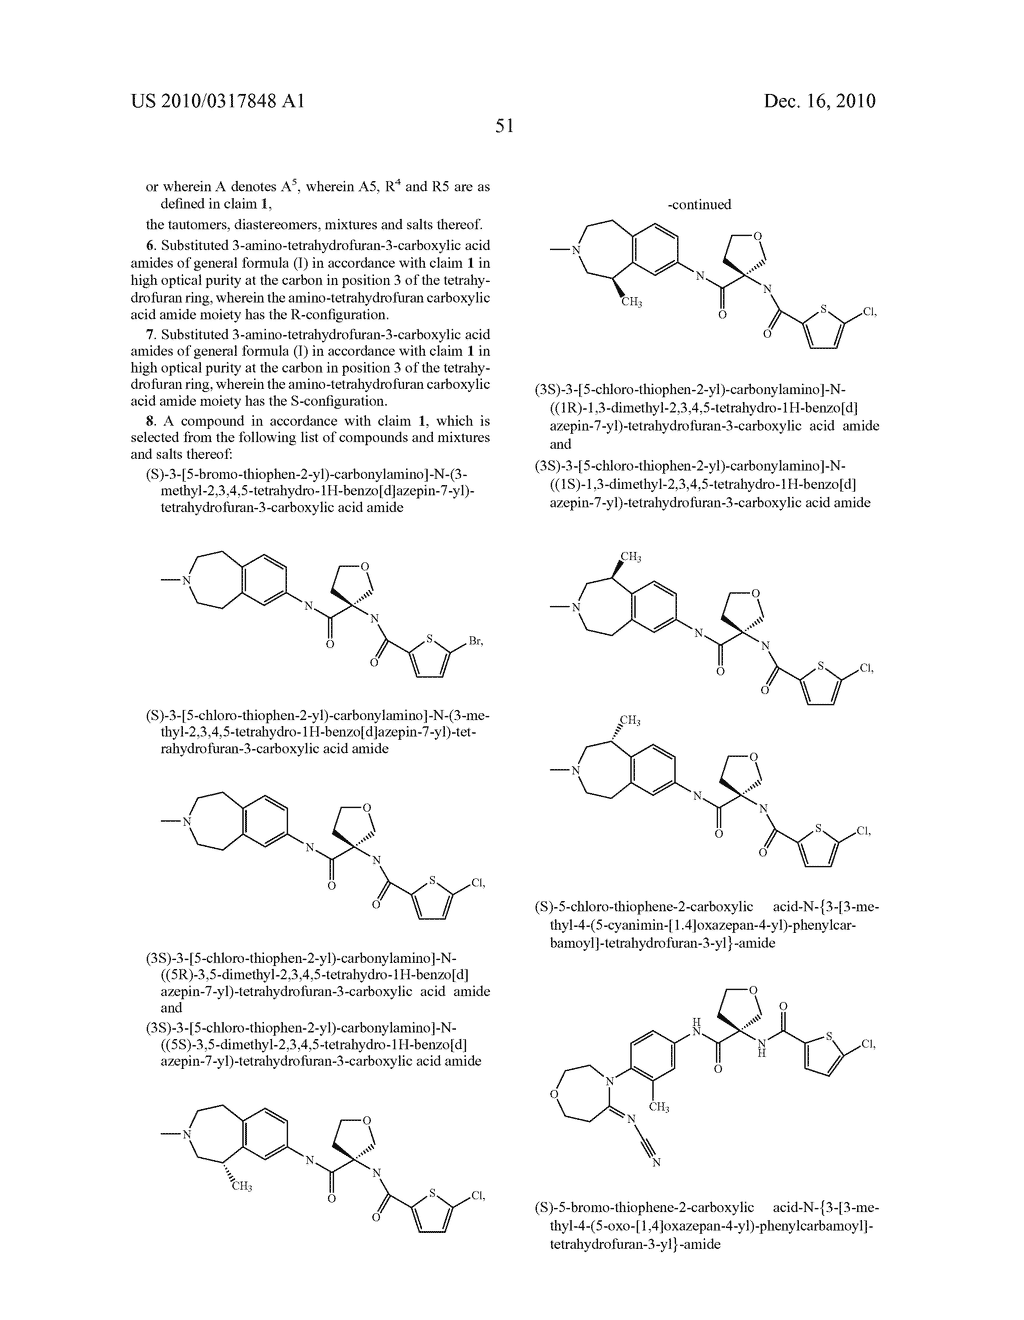 PROCESS FOR THE SYNTHESIS OF DERIVATIVES OF 3-AMINO-TETRAHYDROFURAN-3-CARBOXYLIC ACID AND USE THEREOF AS MEDICAMENTS - diagram, schematic, and image 56